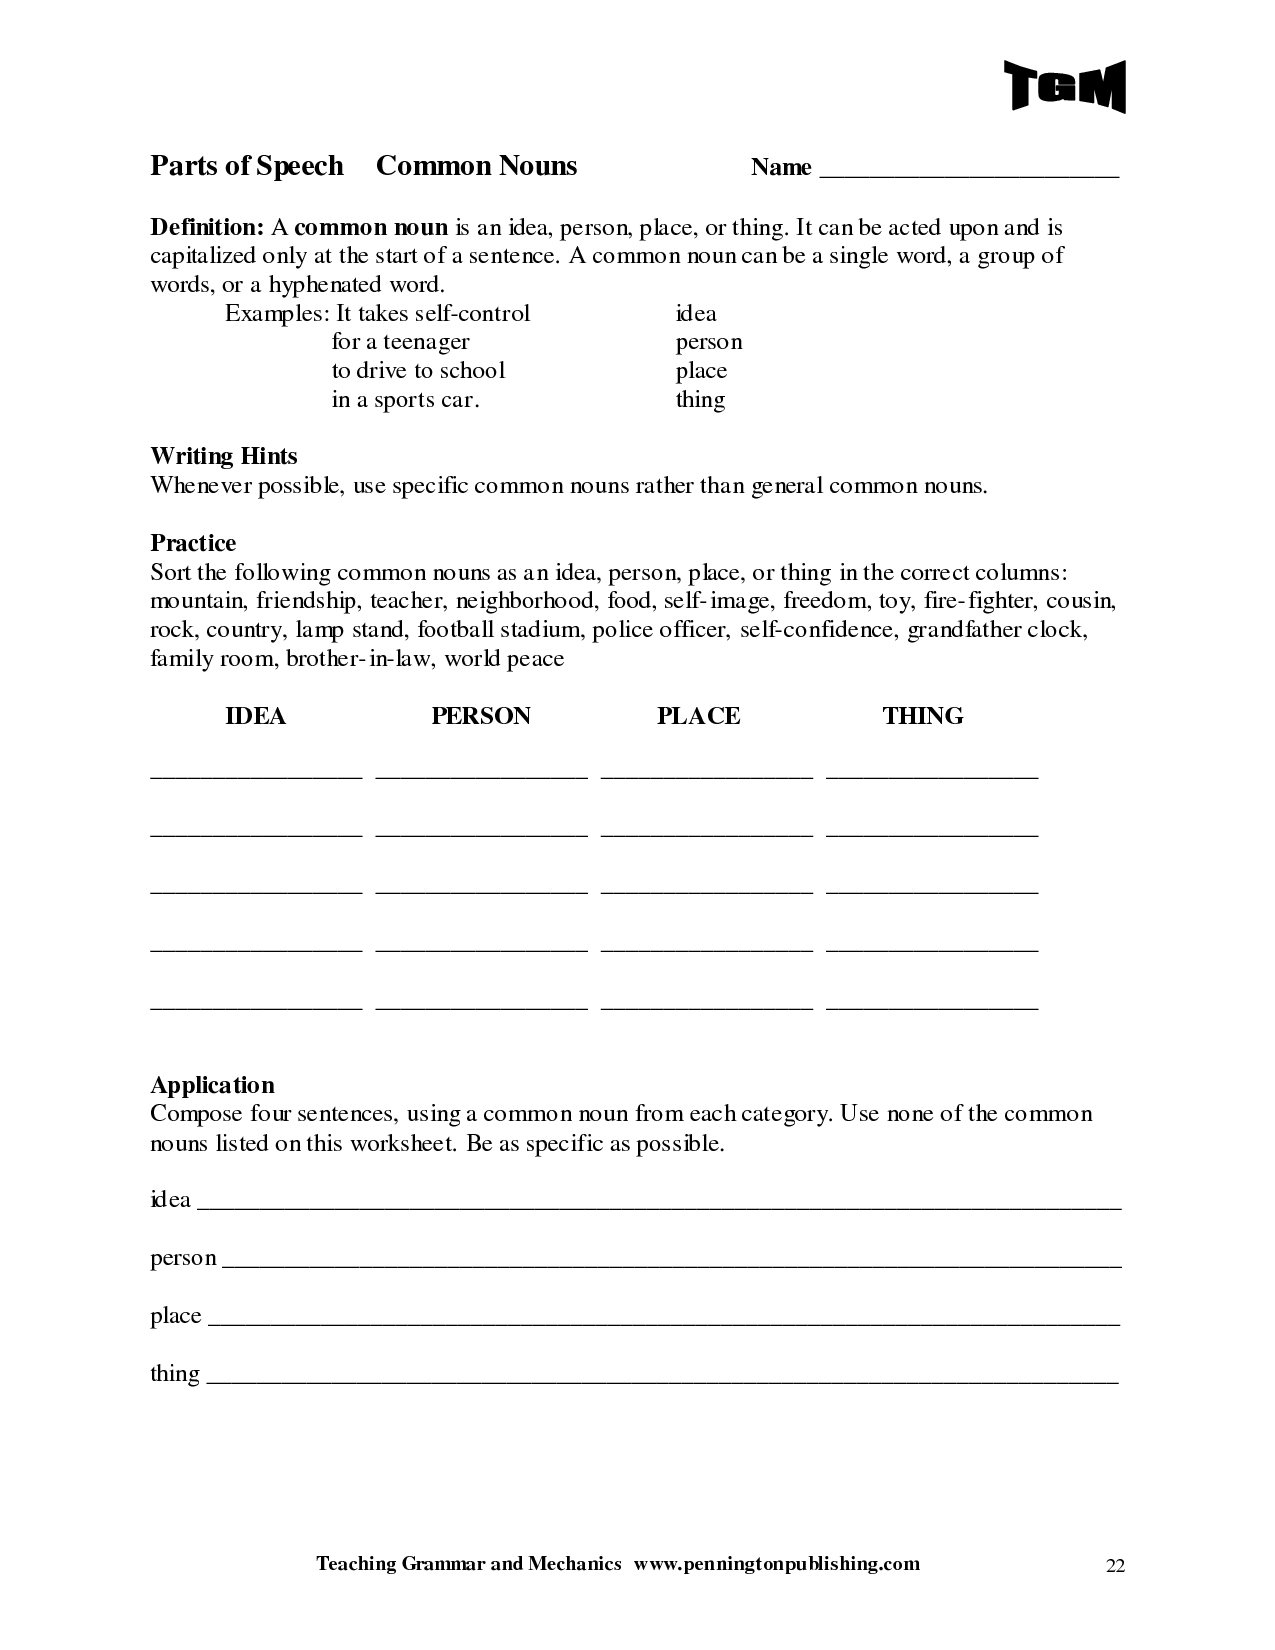 10 Best Images of Health Class Worksheets - Free Mental ...